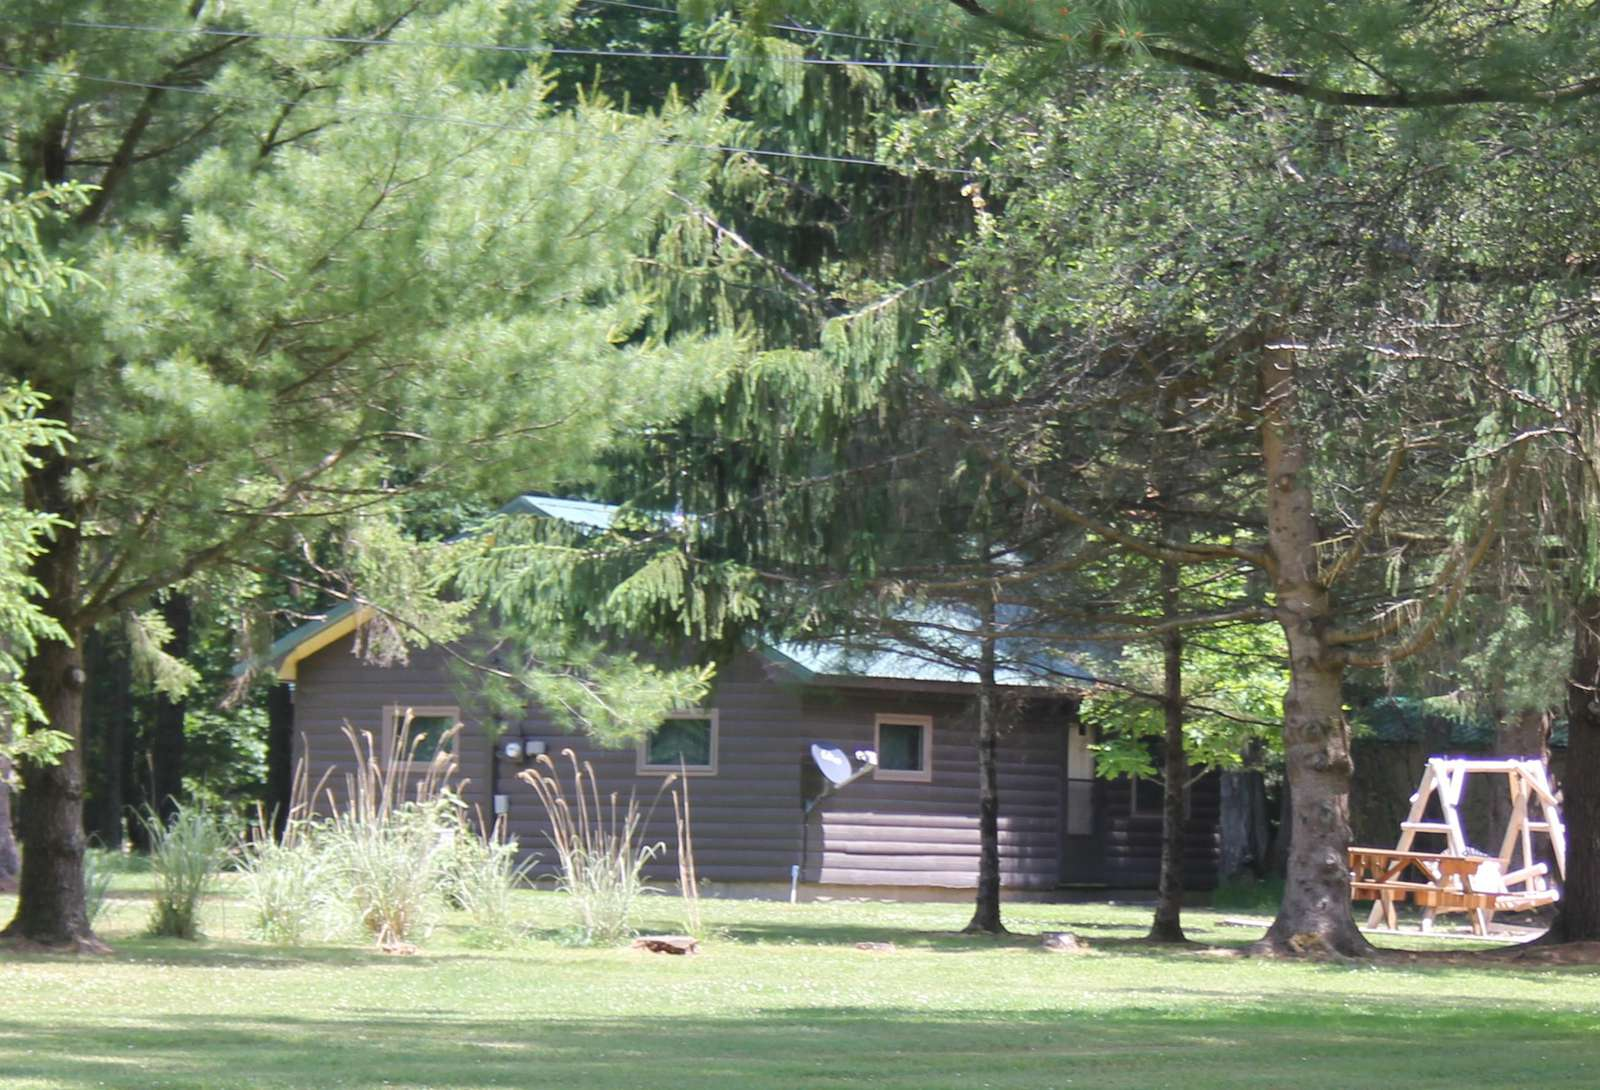 Back lawn area of Twin Oaks Cabin